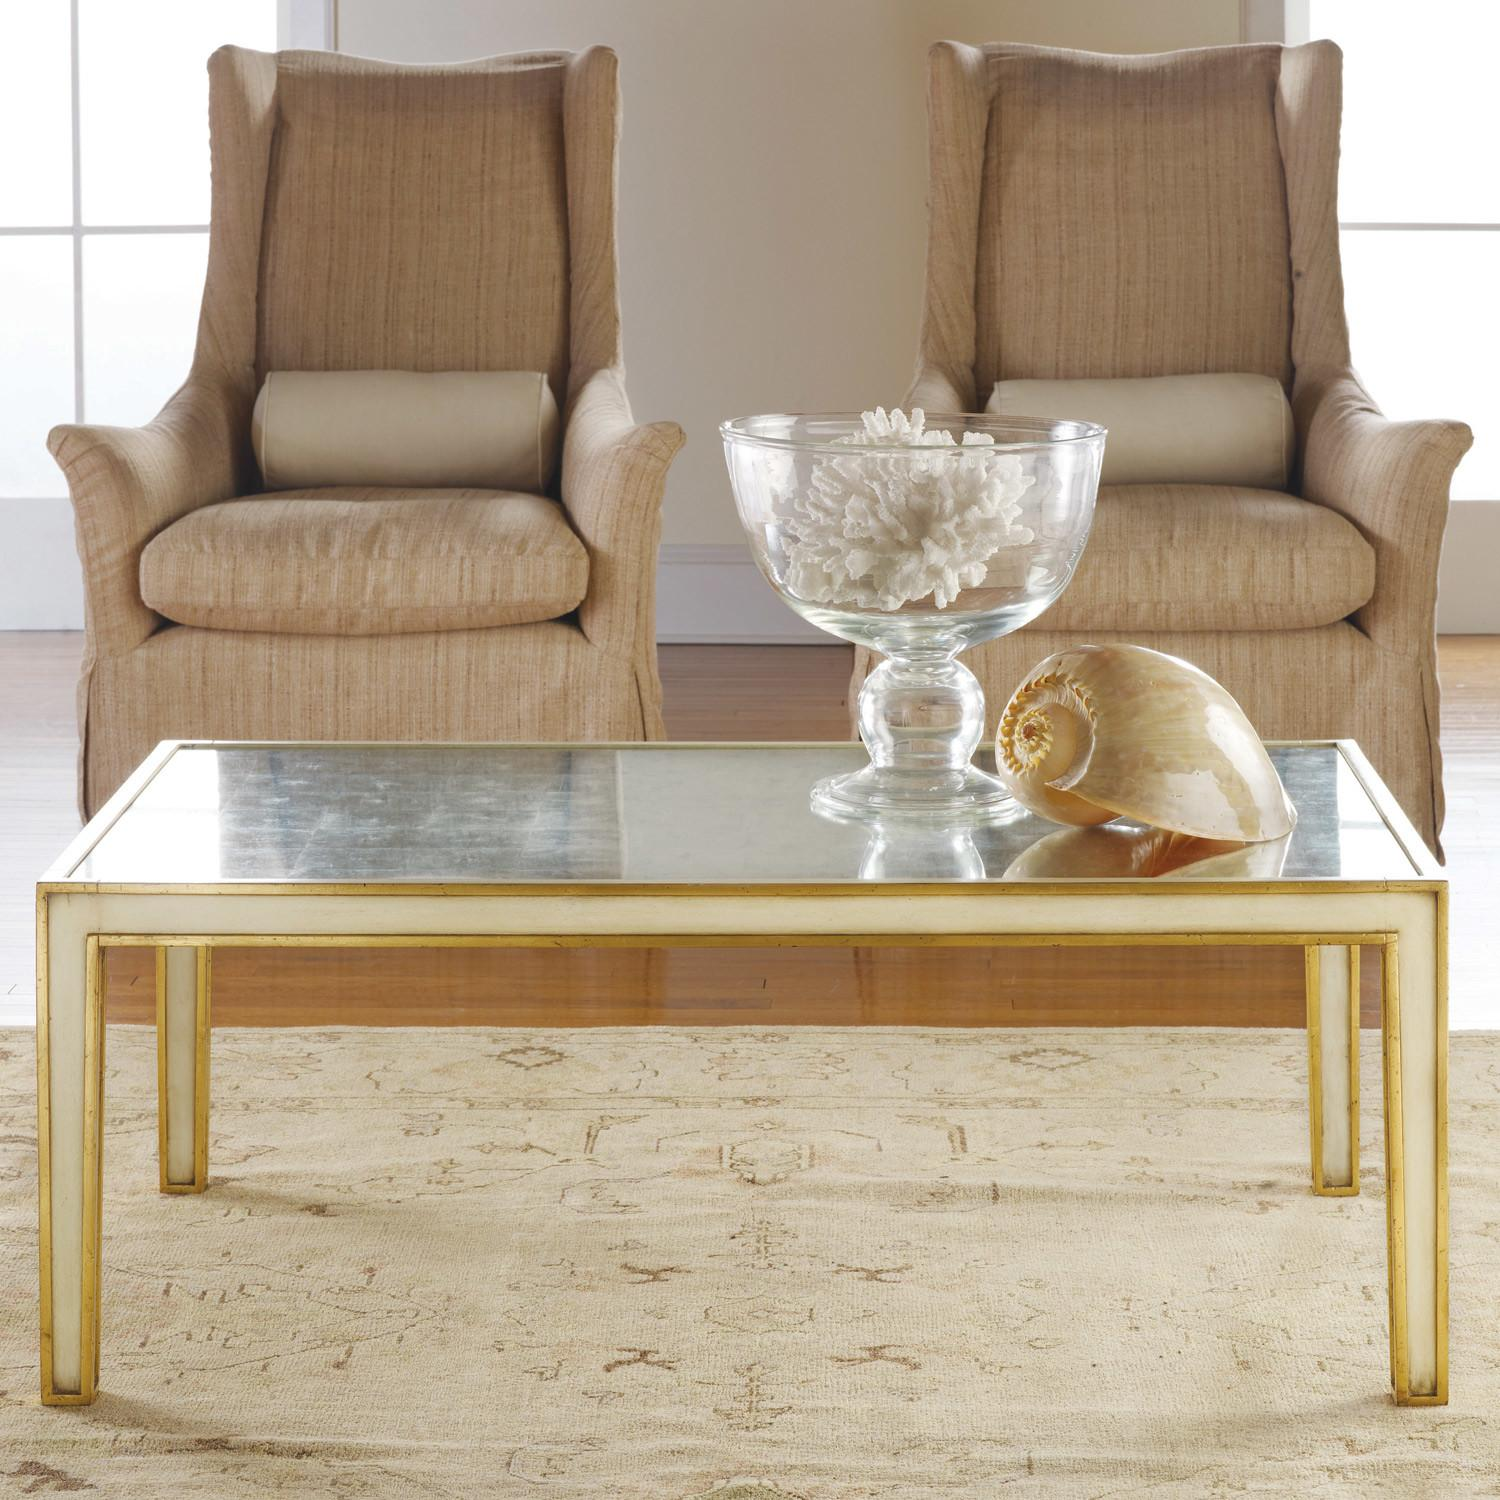 Add Larger Room Mirrored Table Home